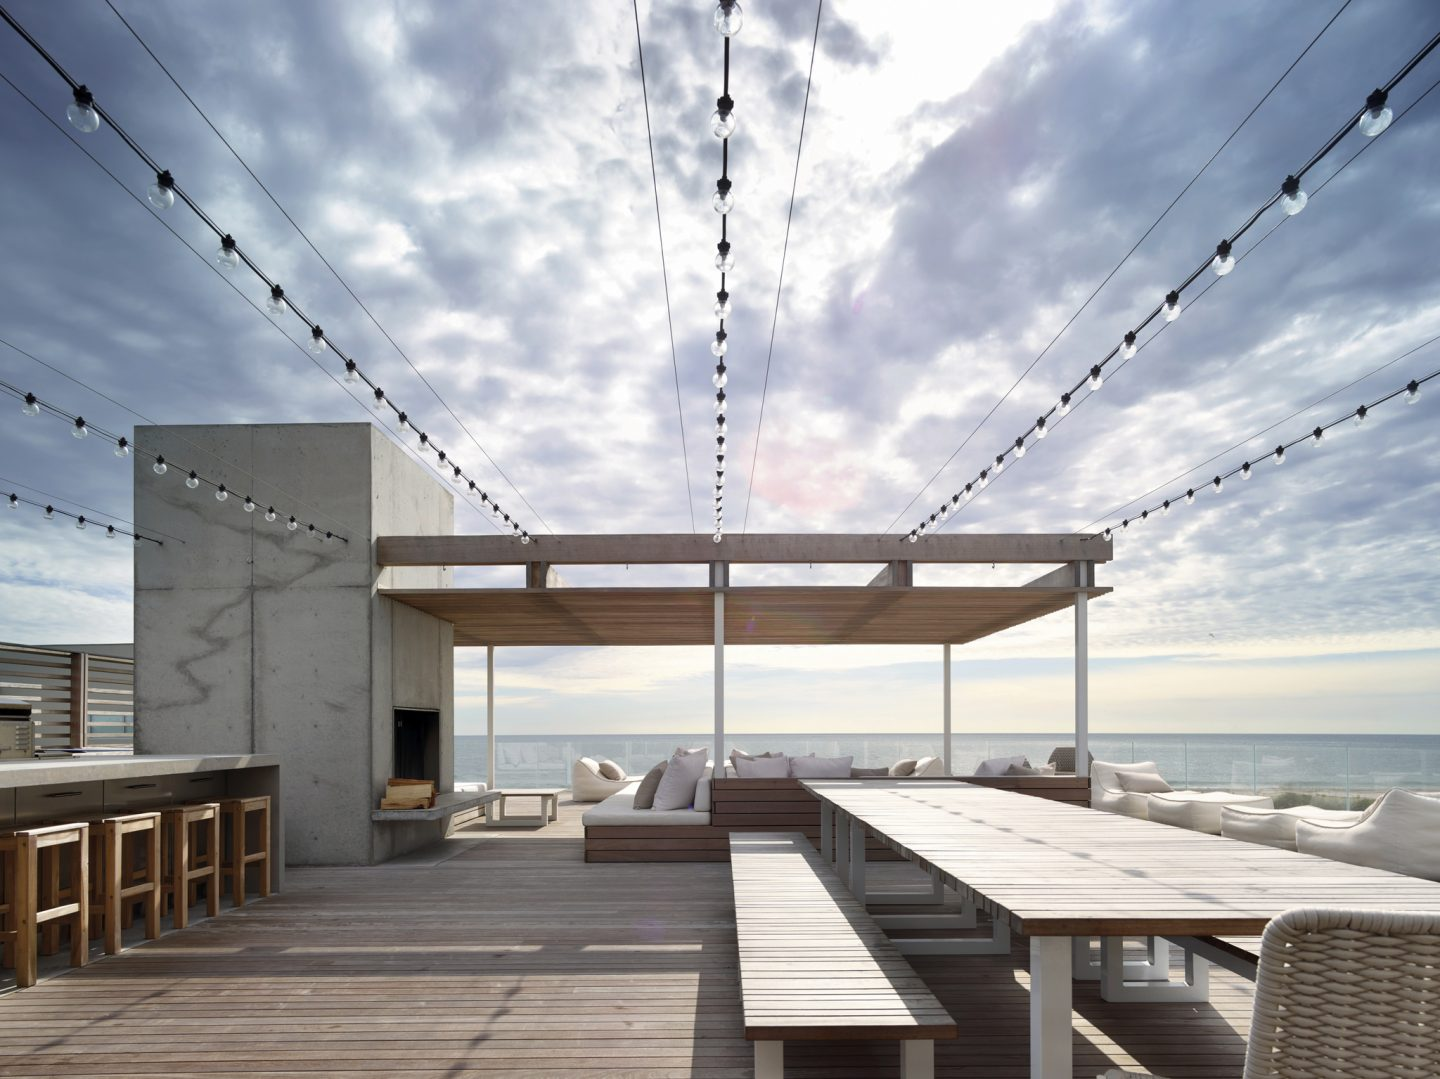 Modern architecture -lounge deck overlooking ocean. #modern #architecture #waterfront #oceanfront